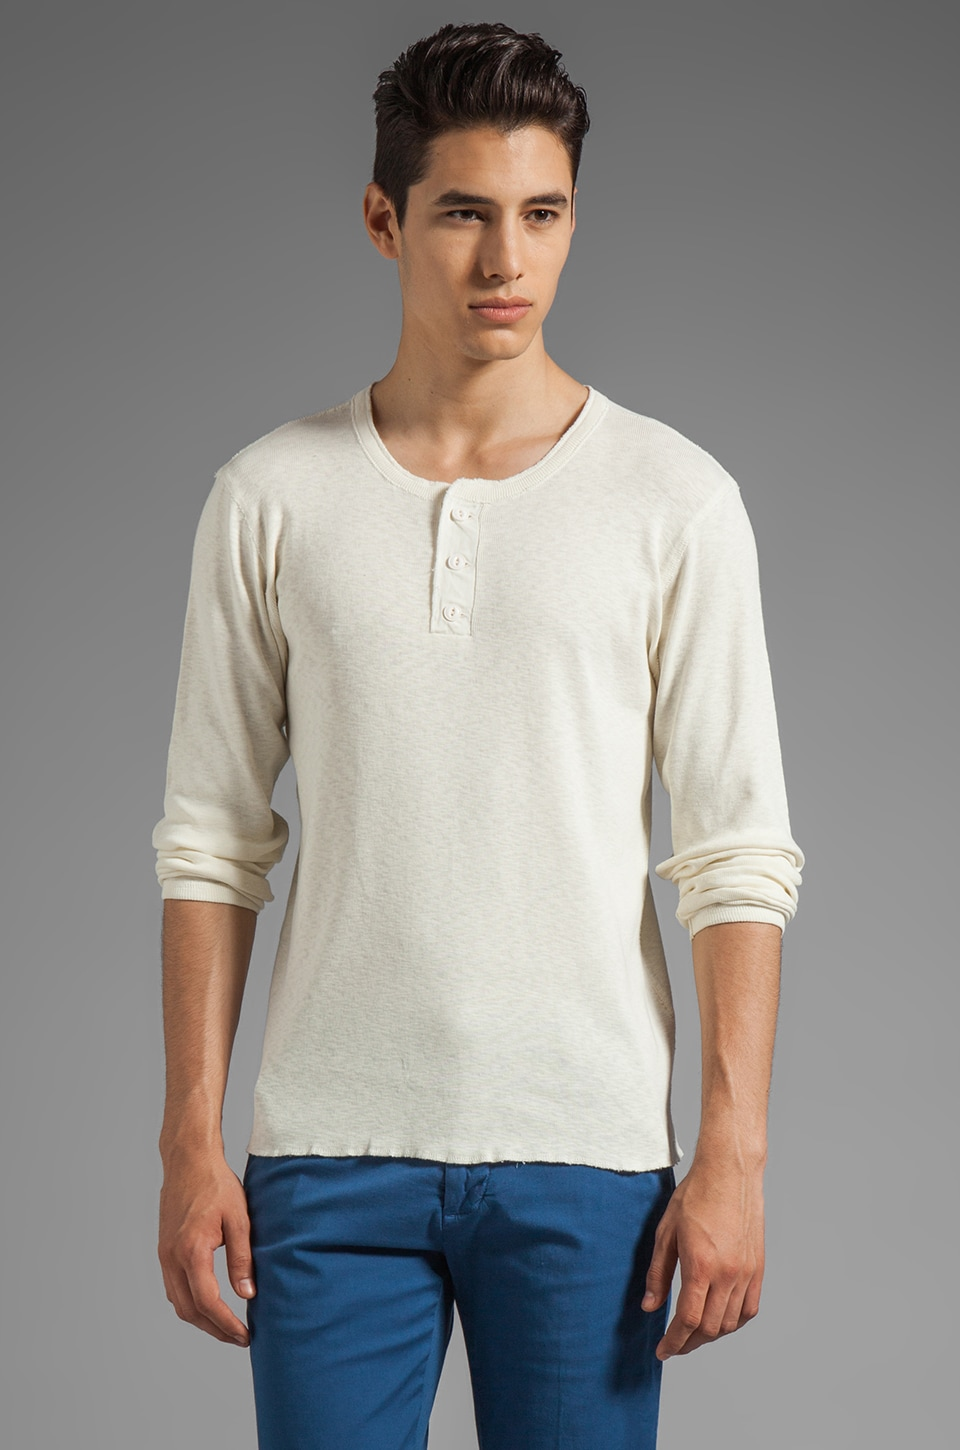 GANT Rugger The Grandpa Henley in Cream